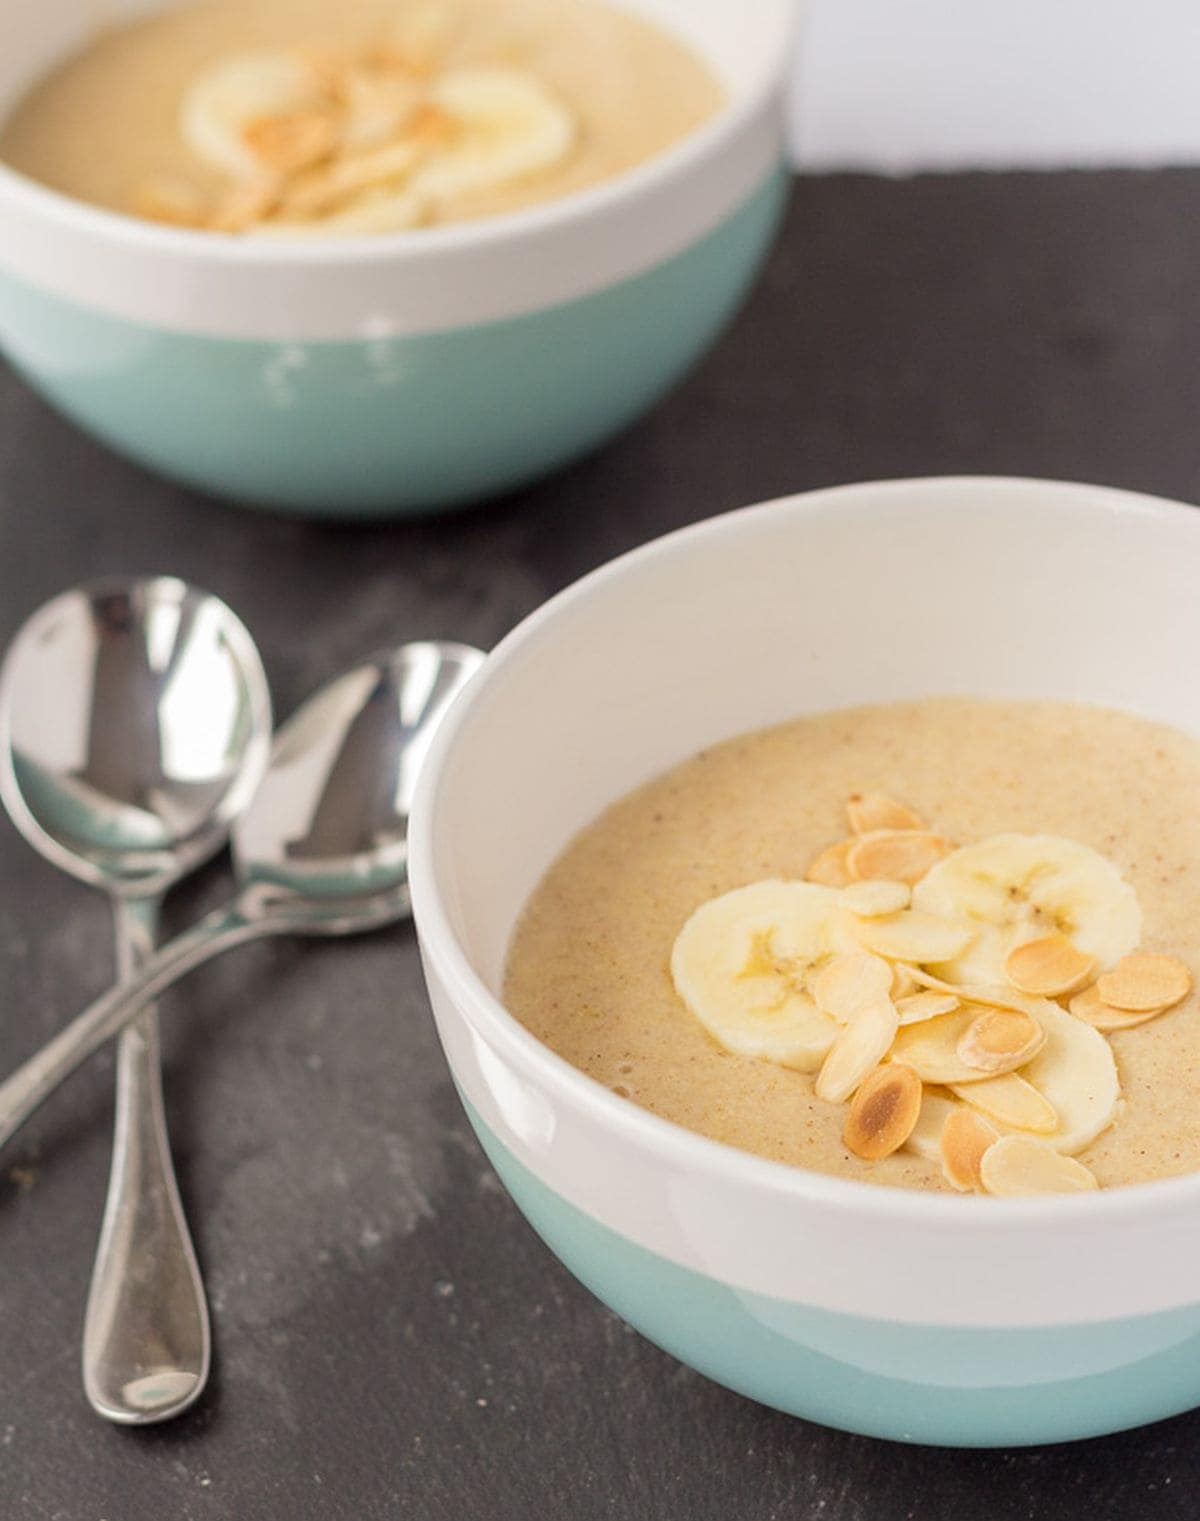 Two bowls of banana millet porridge decorated with sliced bananas diagonally across from each other. Serving spoons to the left.